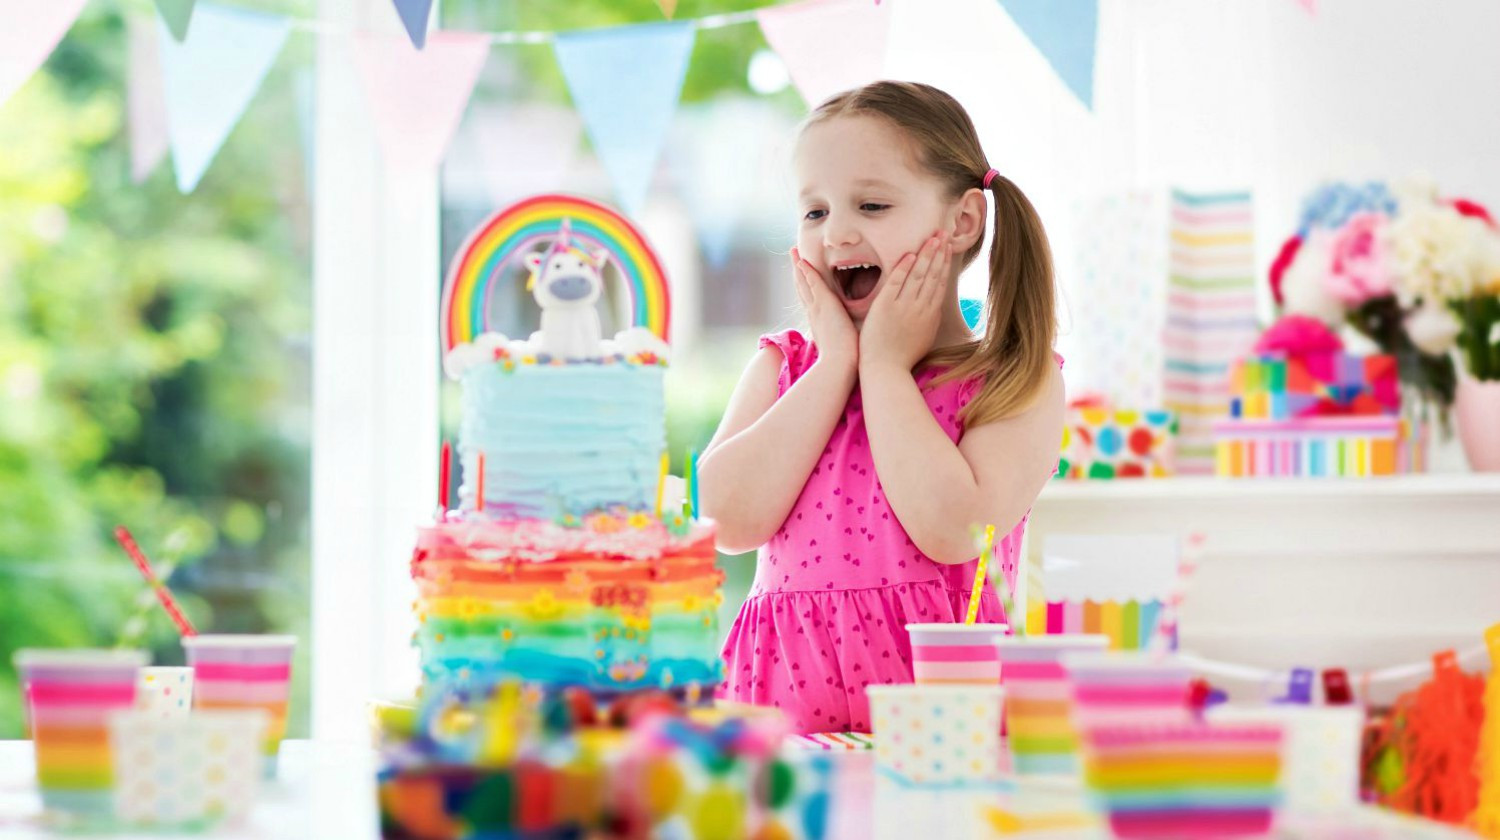 Birthday Party Crafts  Birthday Party Craft Ideas To Make Your Kid s Day Special